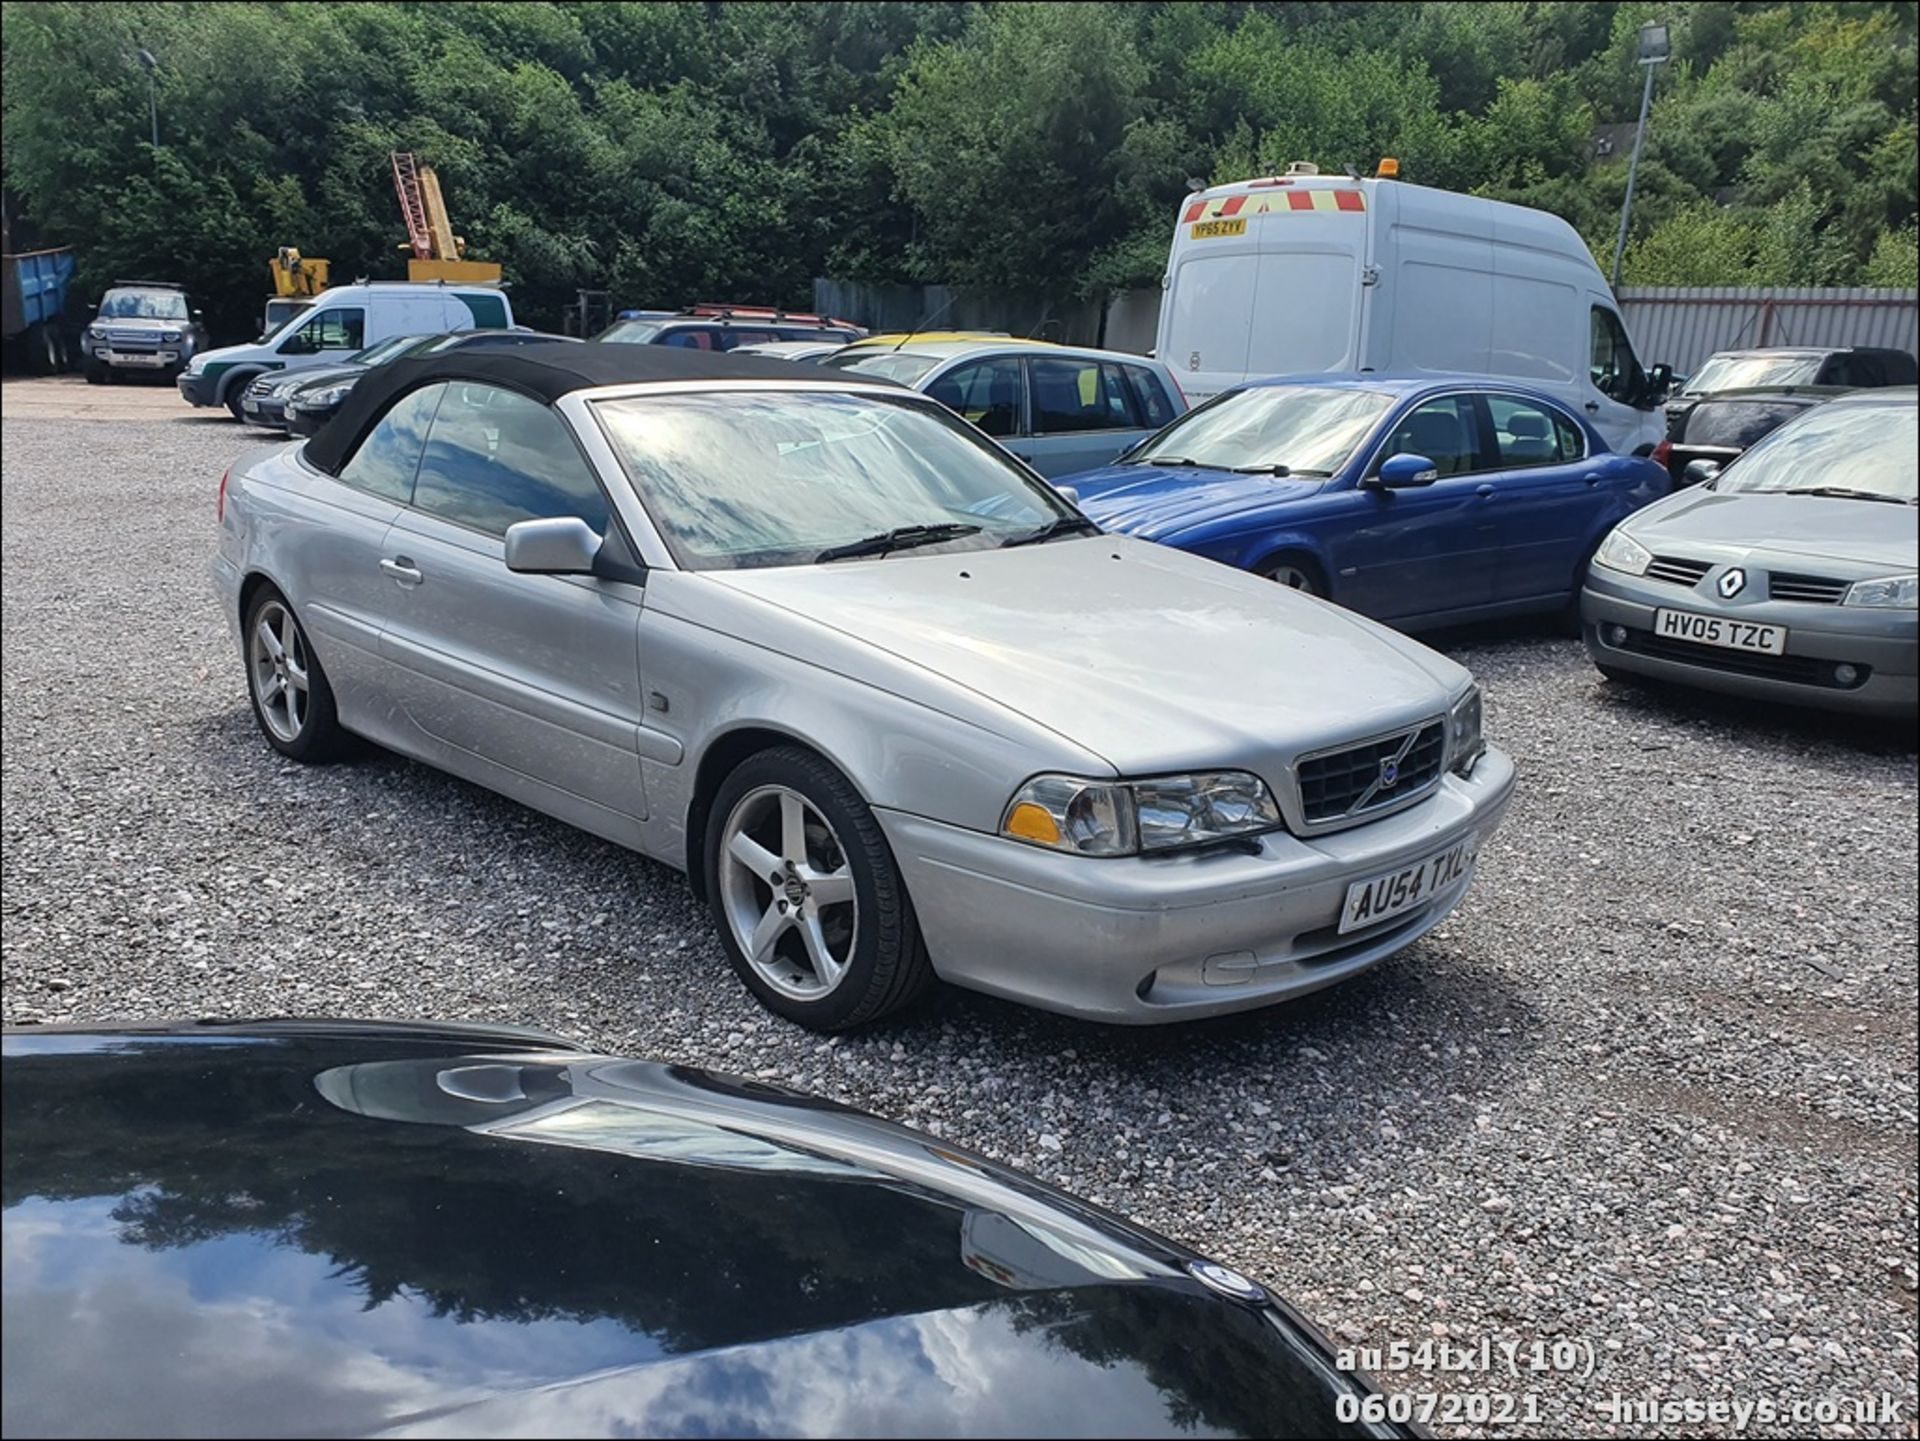 04/54 VOLVO C70 T - 1984cc 2dr Convertible (Silver, 136k) - Image 10 of 15